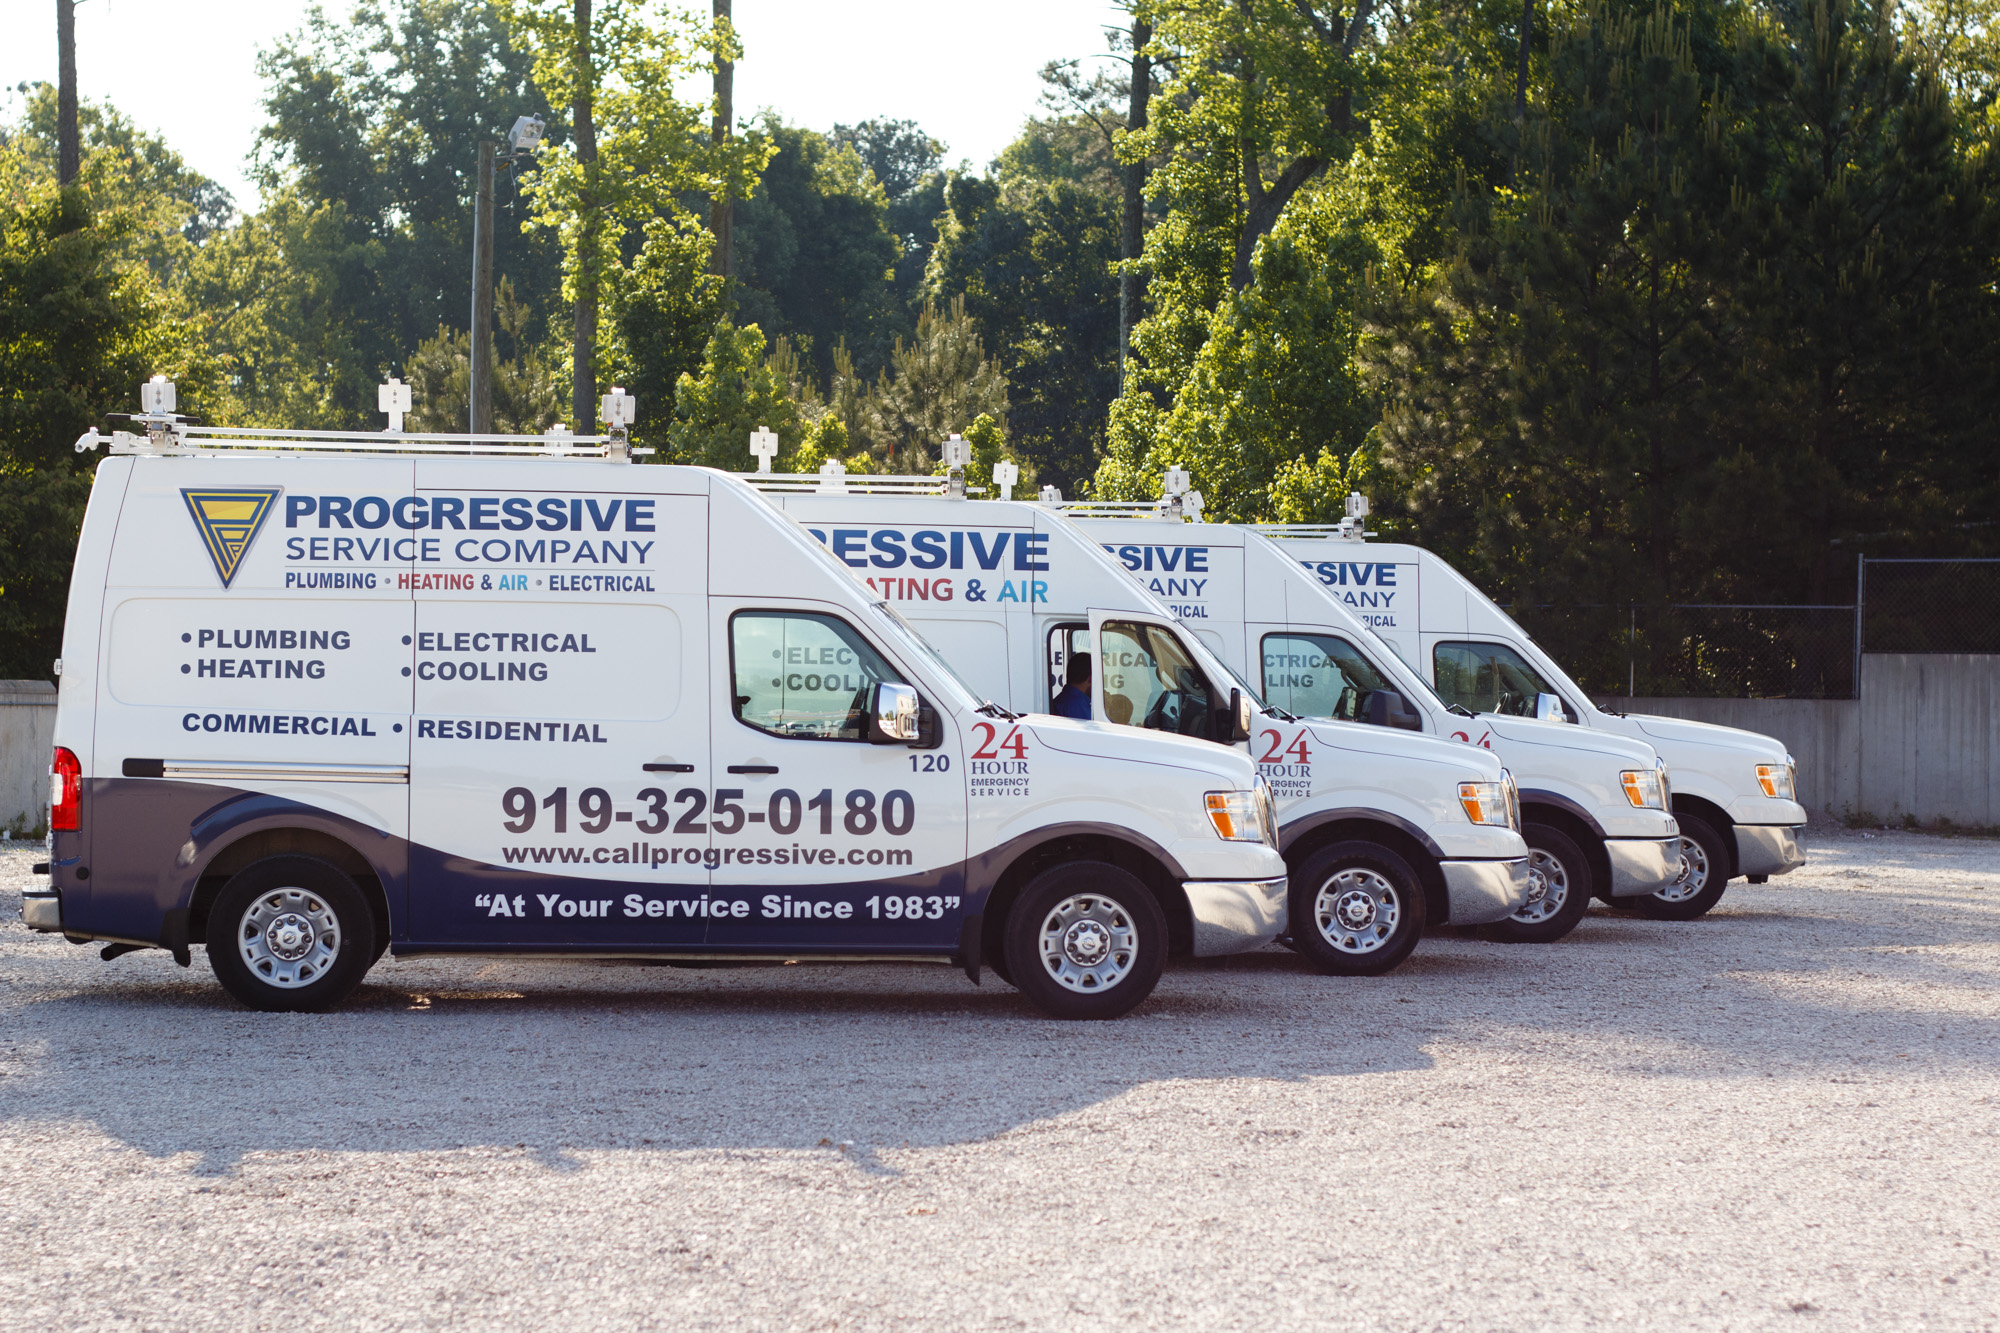 Progressive Service Company Vehicles